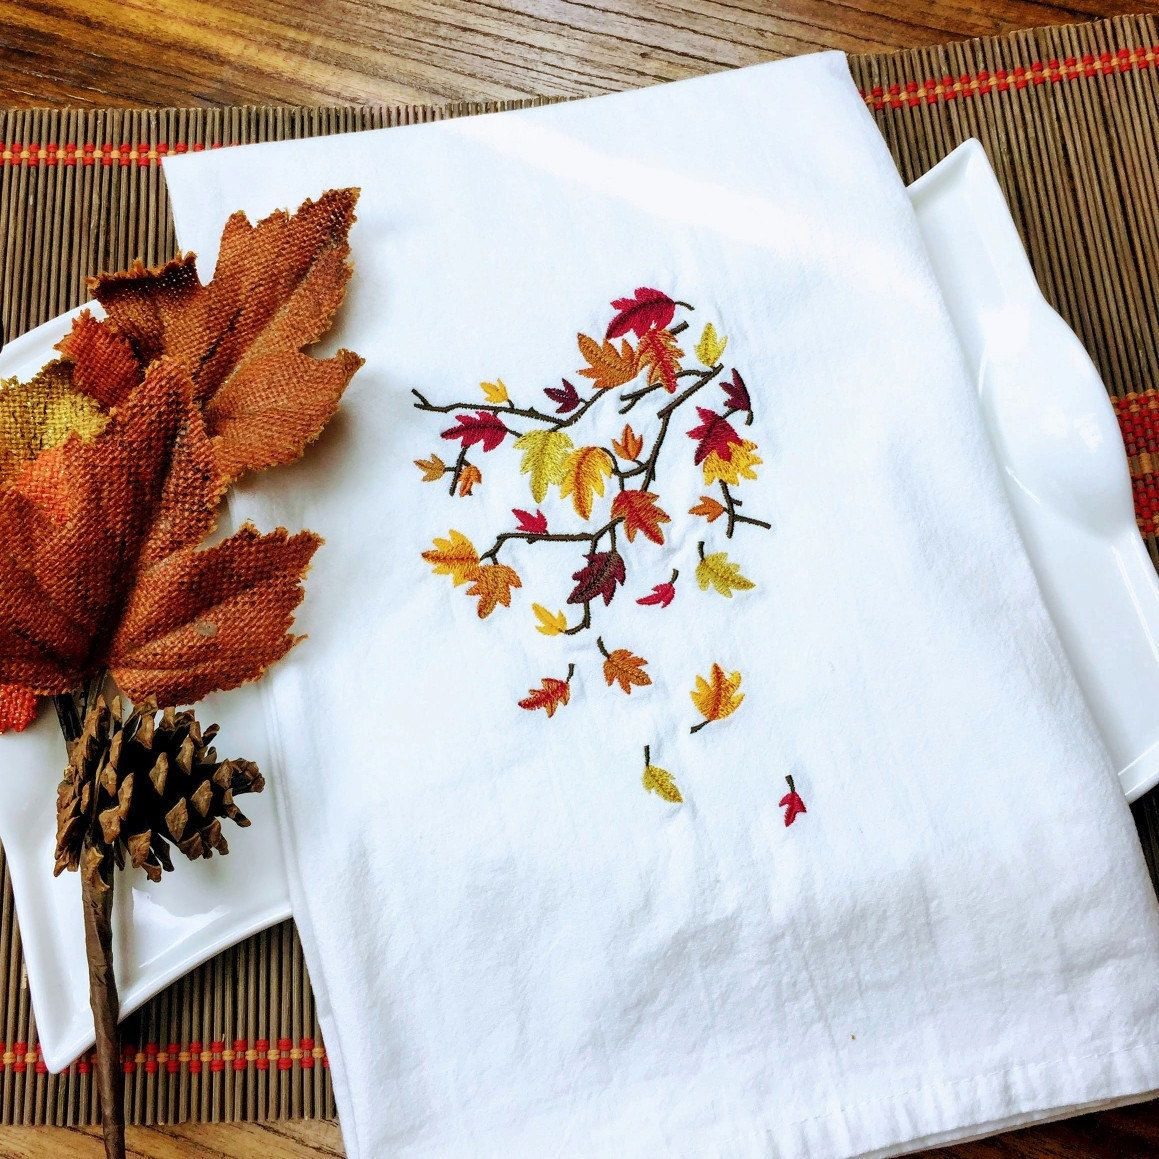 Autumn Branches Theme Embroidery Kitchen Towel, Flour Sack Towel, Saying Tea Towel, Farm House Decor, Kitchen Decor, Made in Dallas, Texas #pictureplacemeant